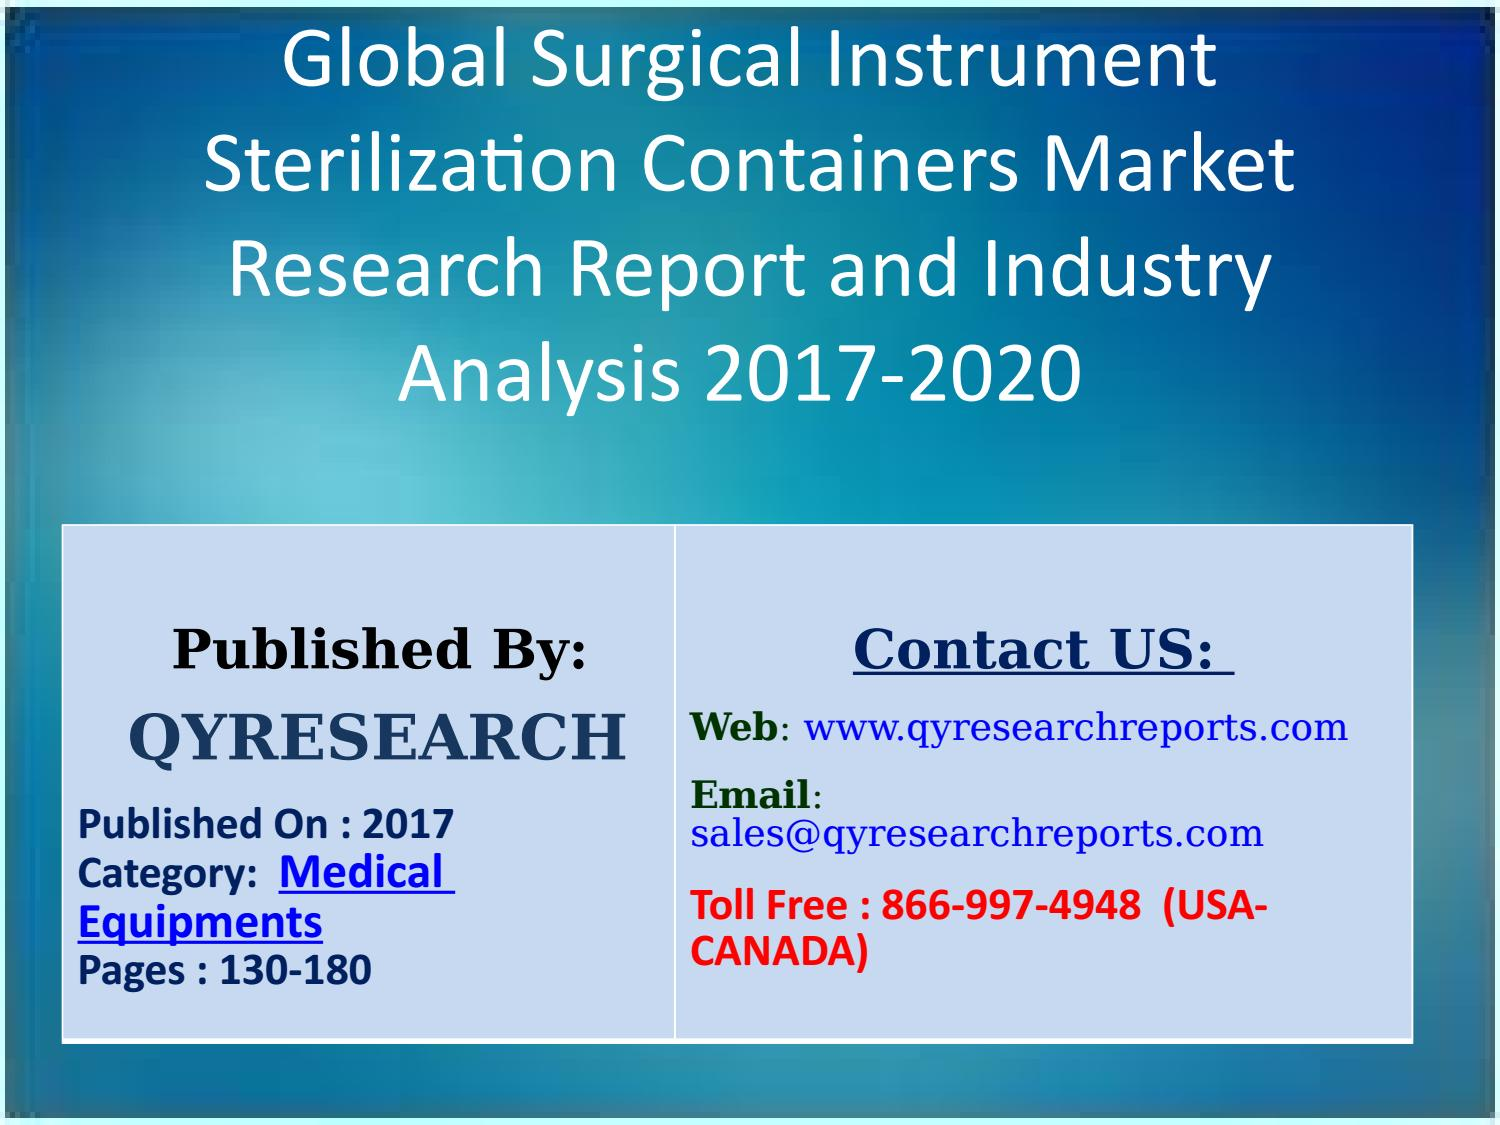 Global Surgical Instrument Sterilization Containers Market Key